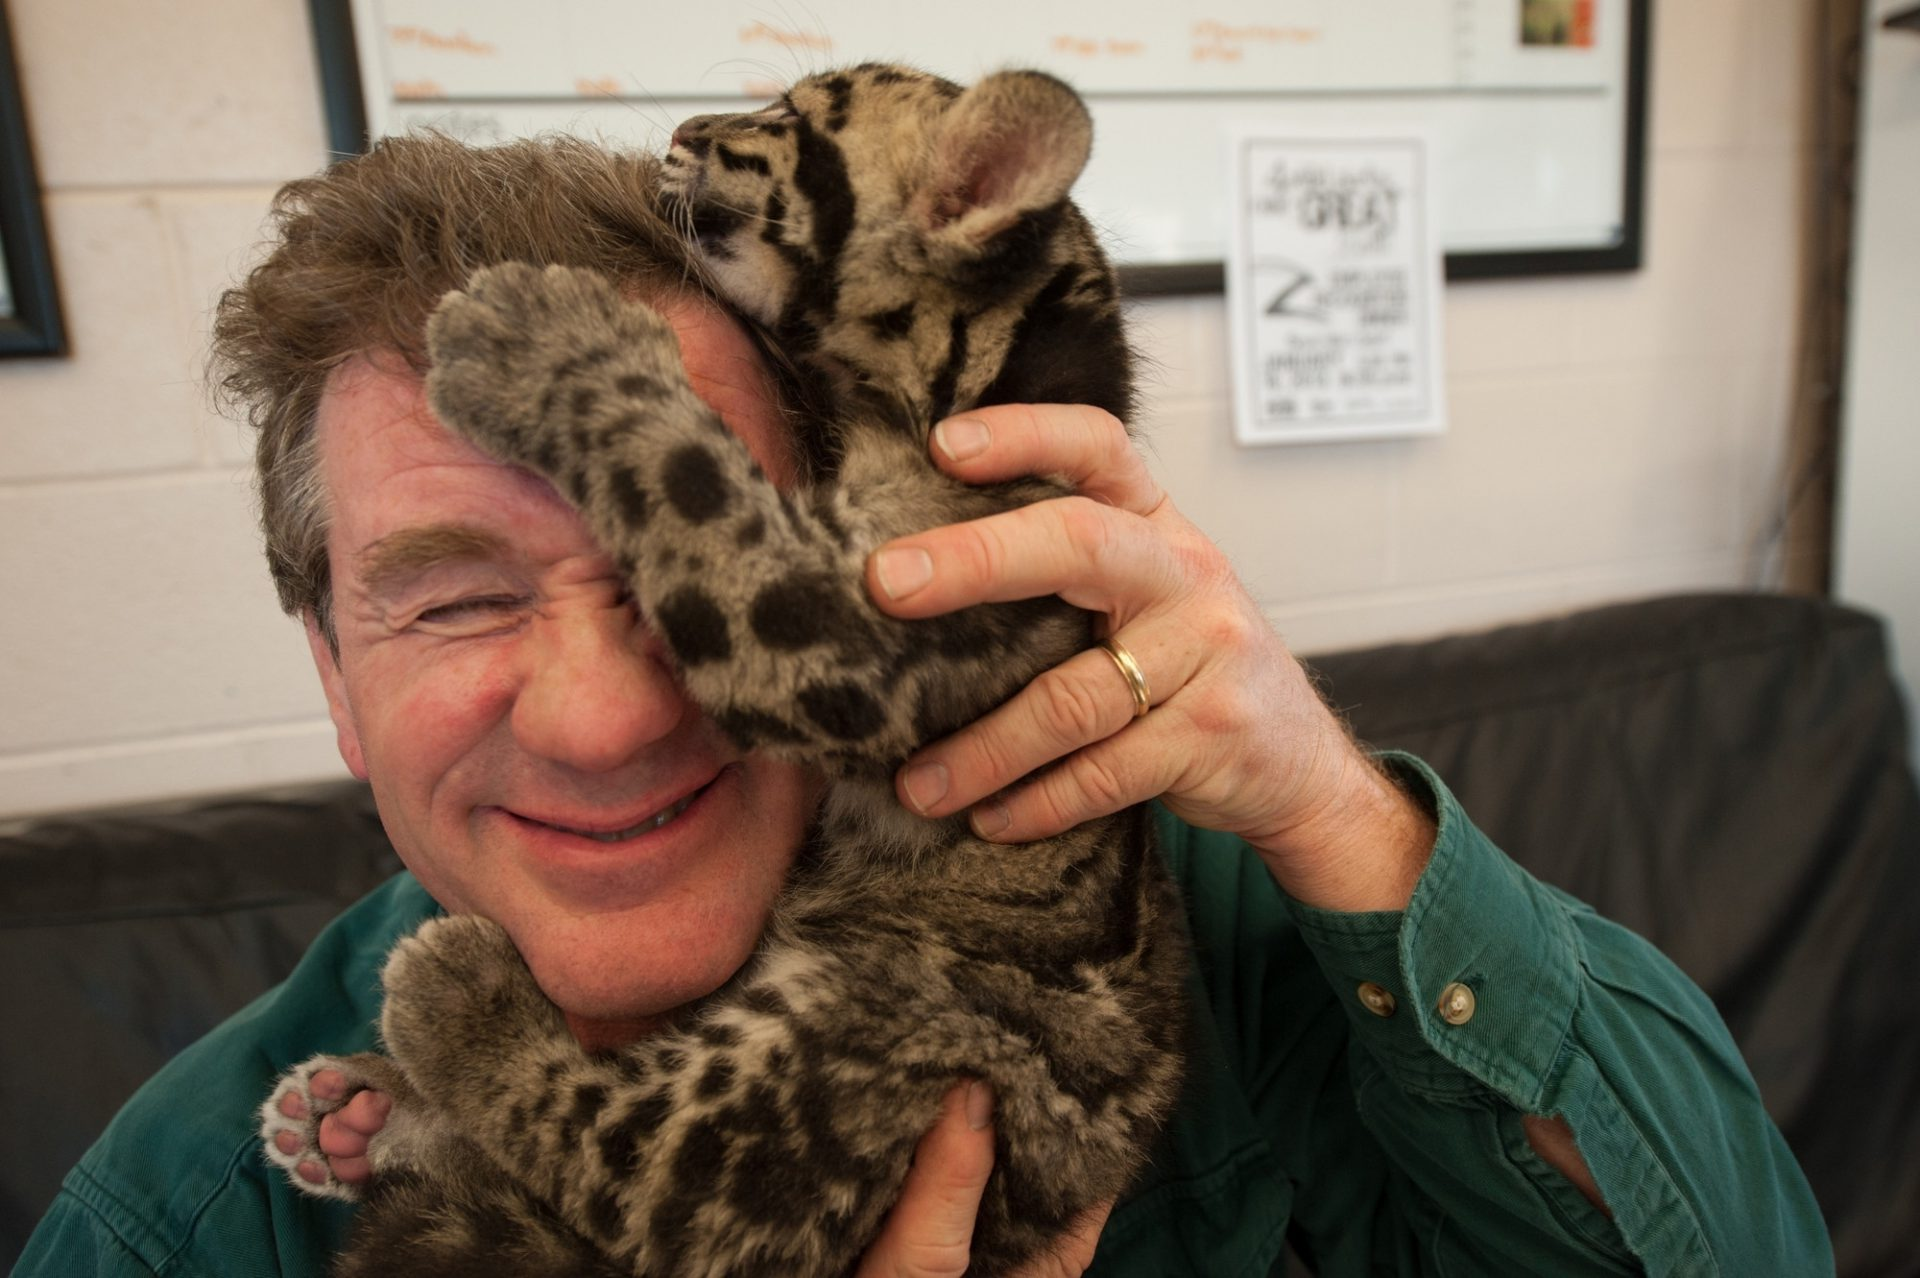 Photo: Nine-week-old clouded leopard cub with Joel Sartore.